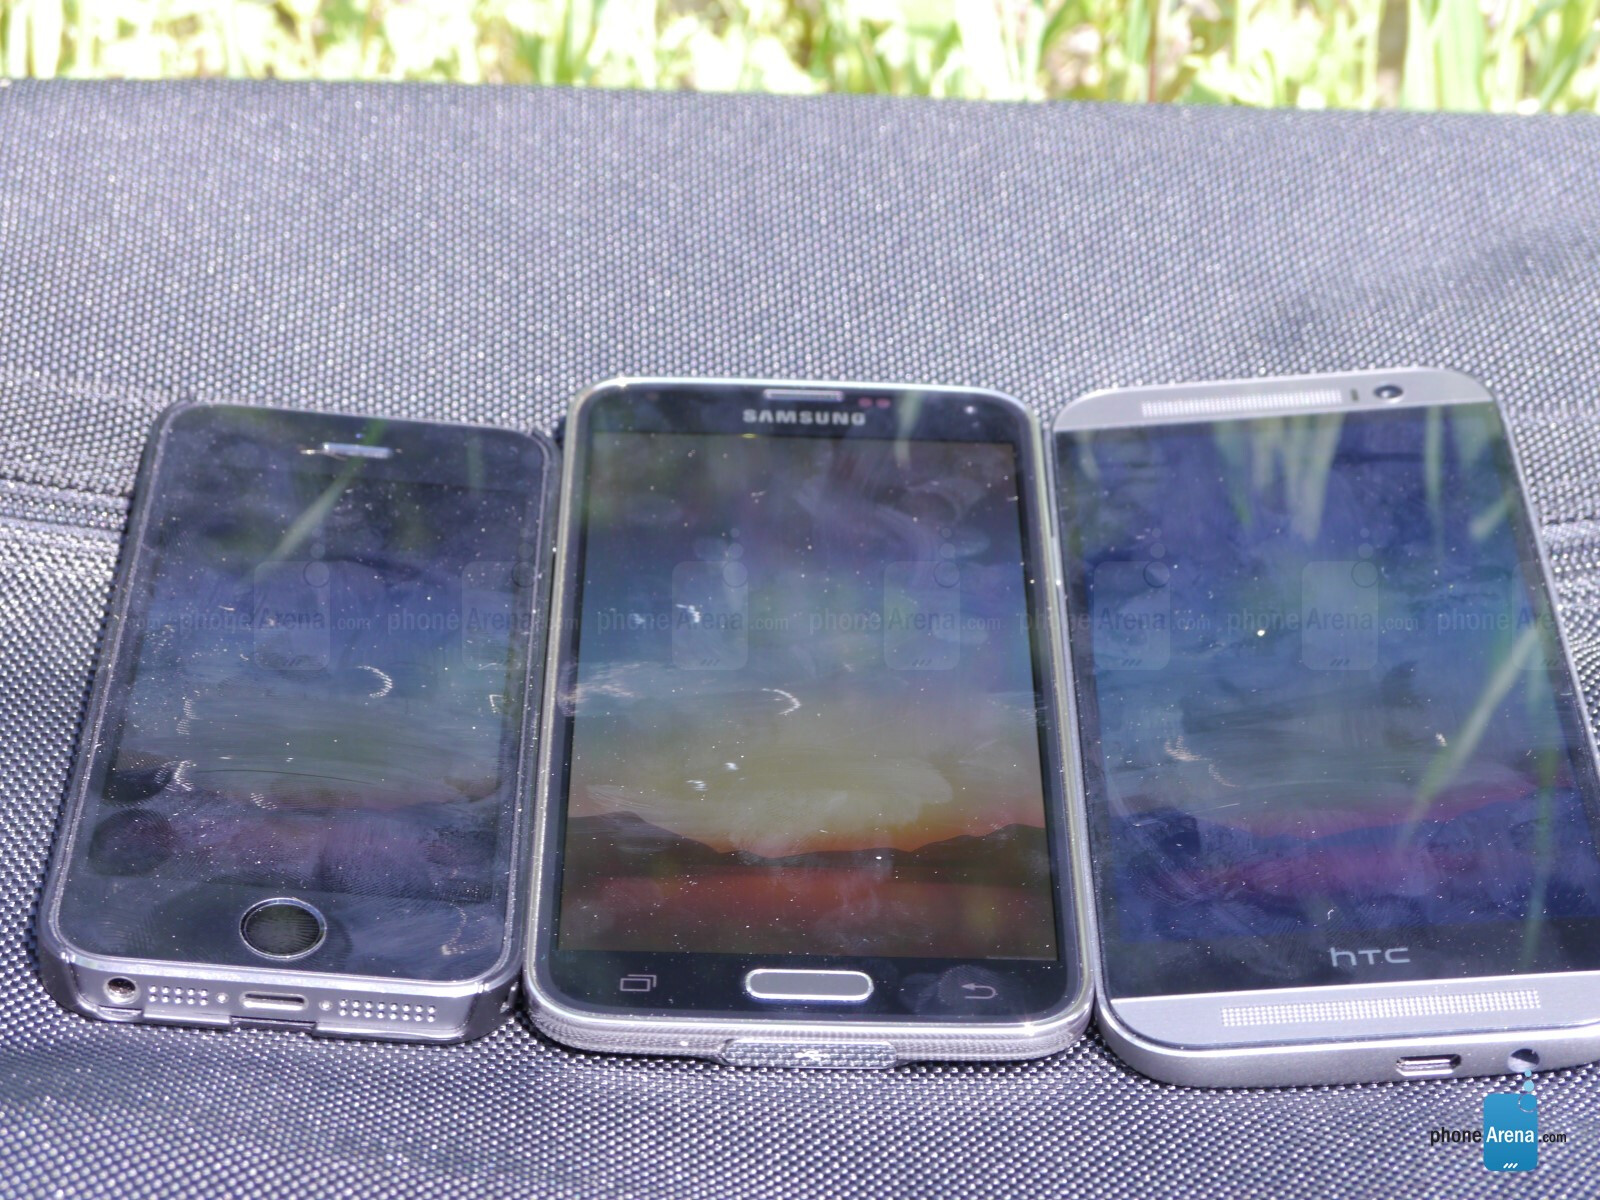 best display for outdoor use comparison  samsung galaxy s5